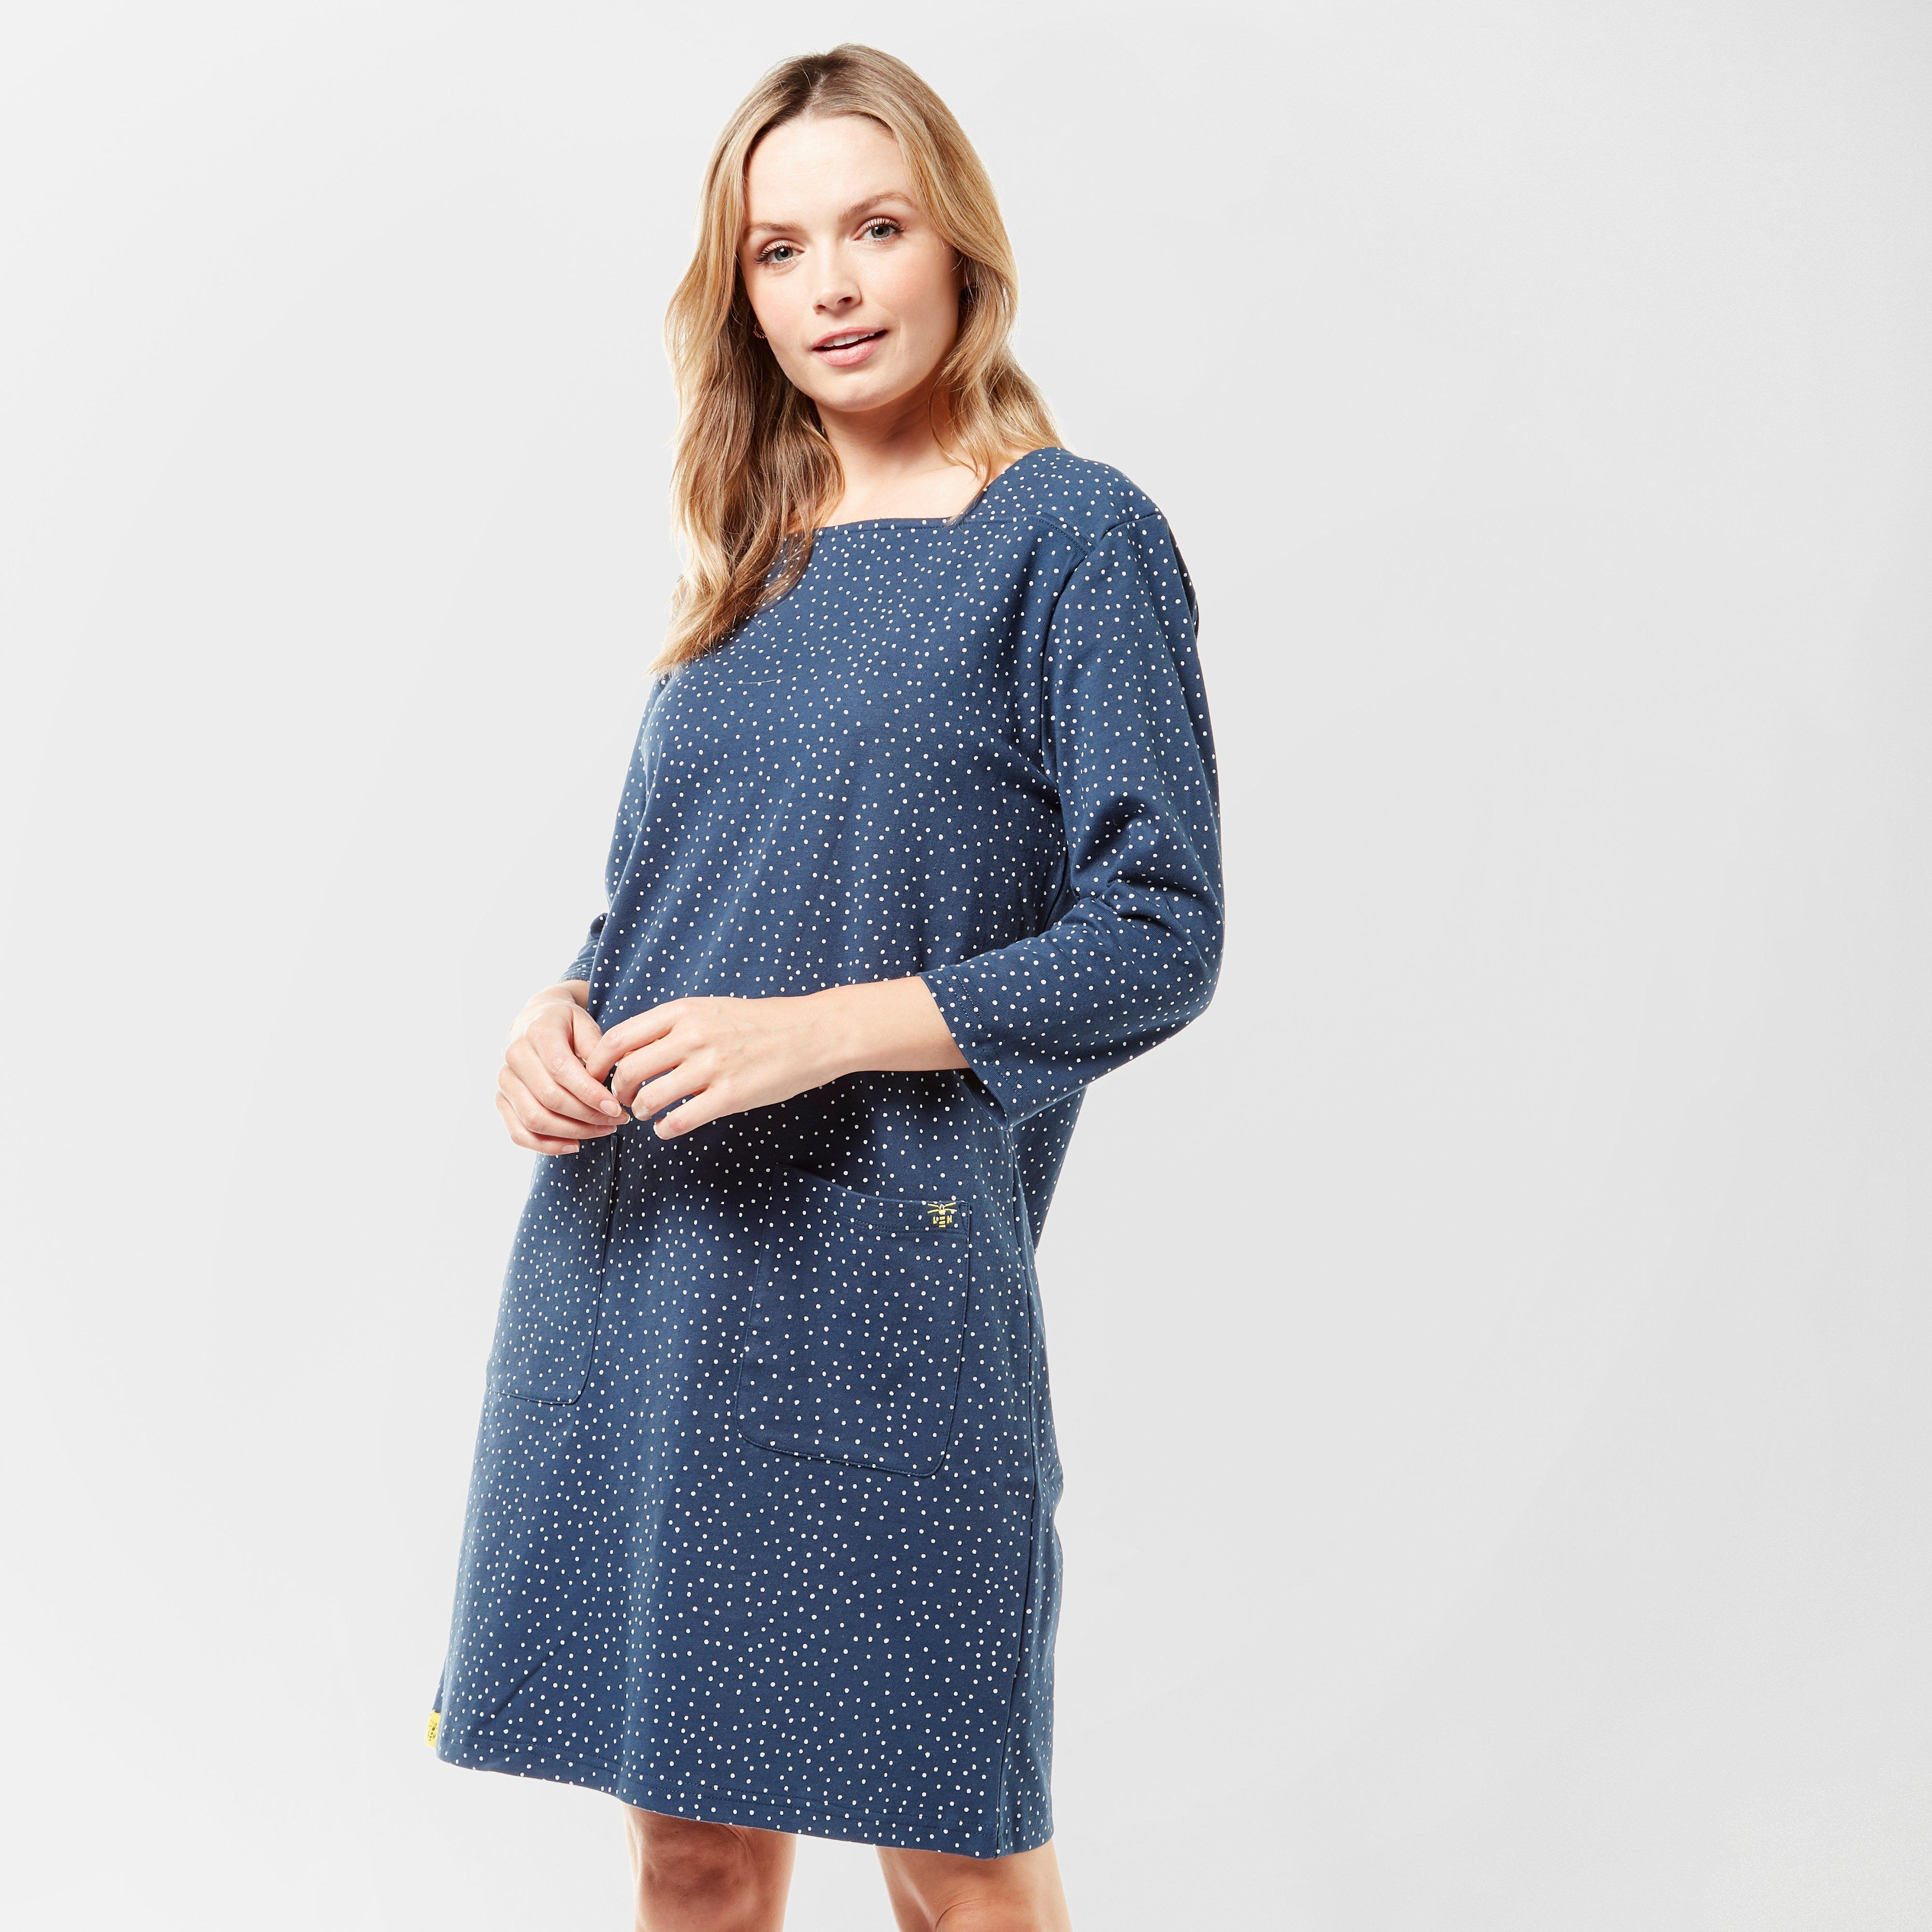 Lighthouse Lighthouse Womens Anabelle Dress - Navy, Navy